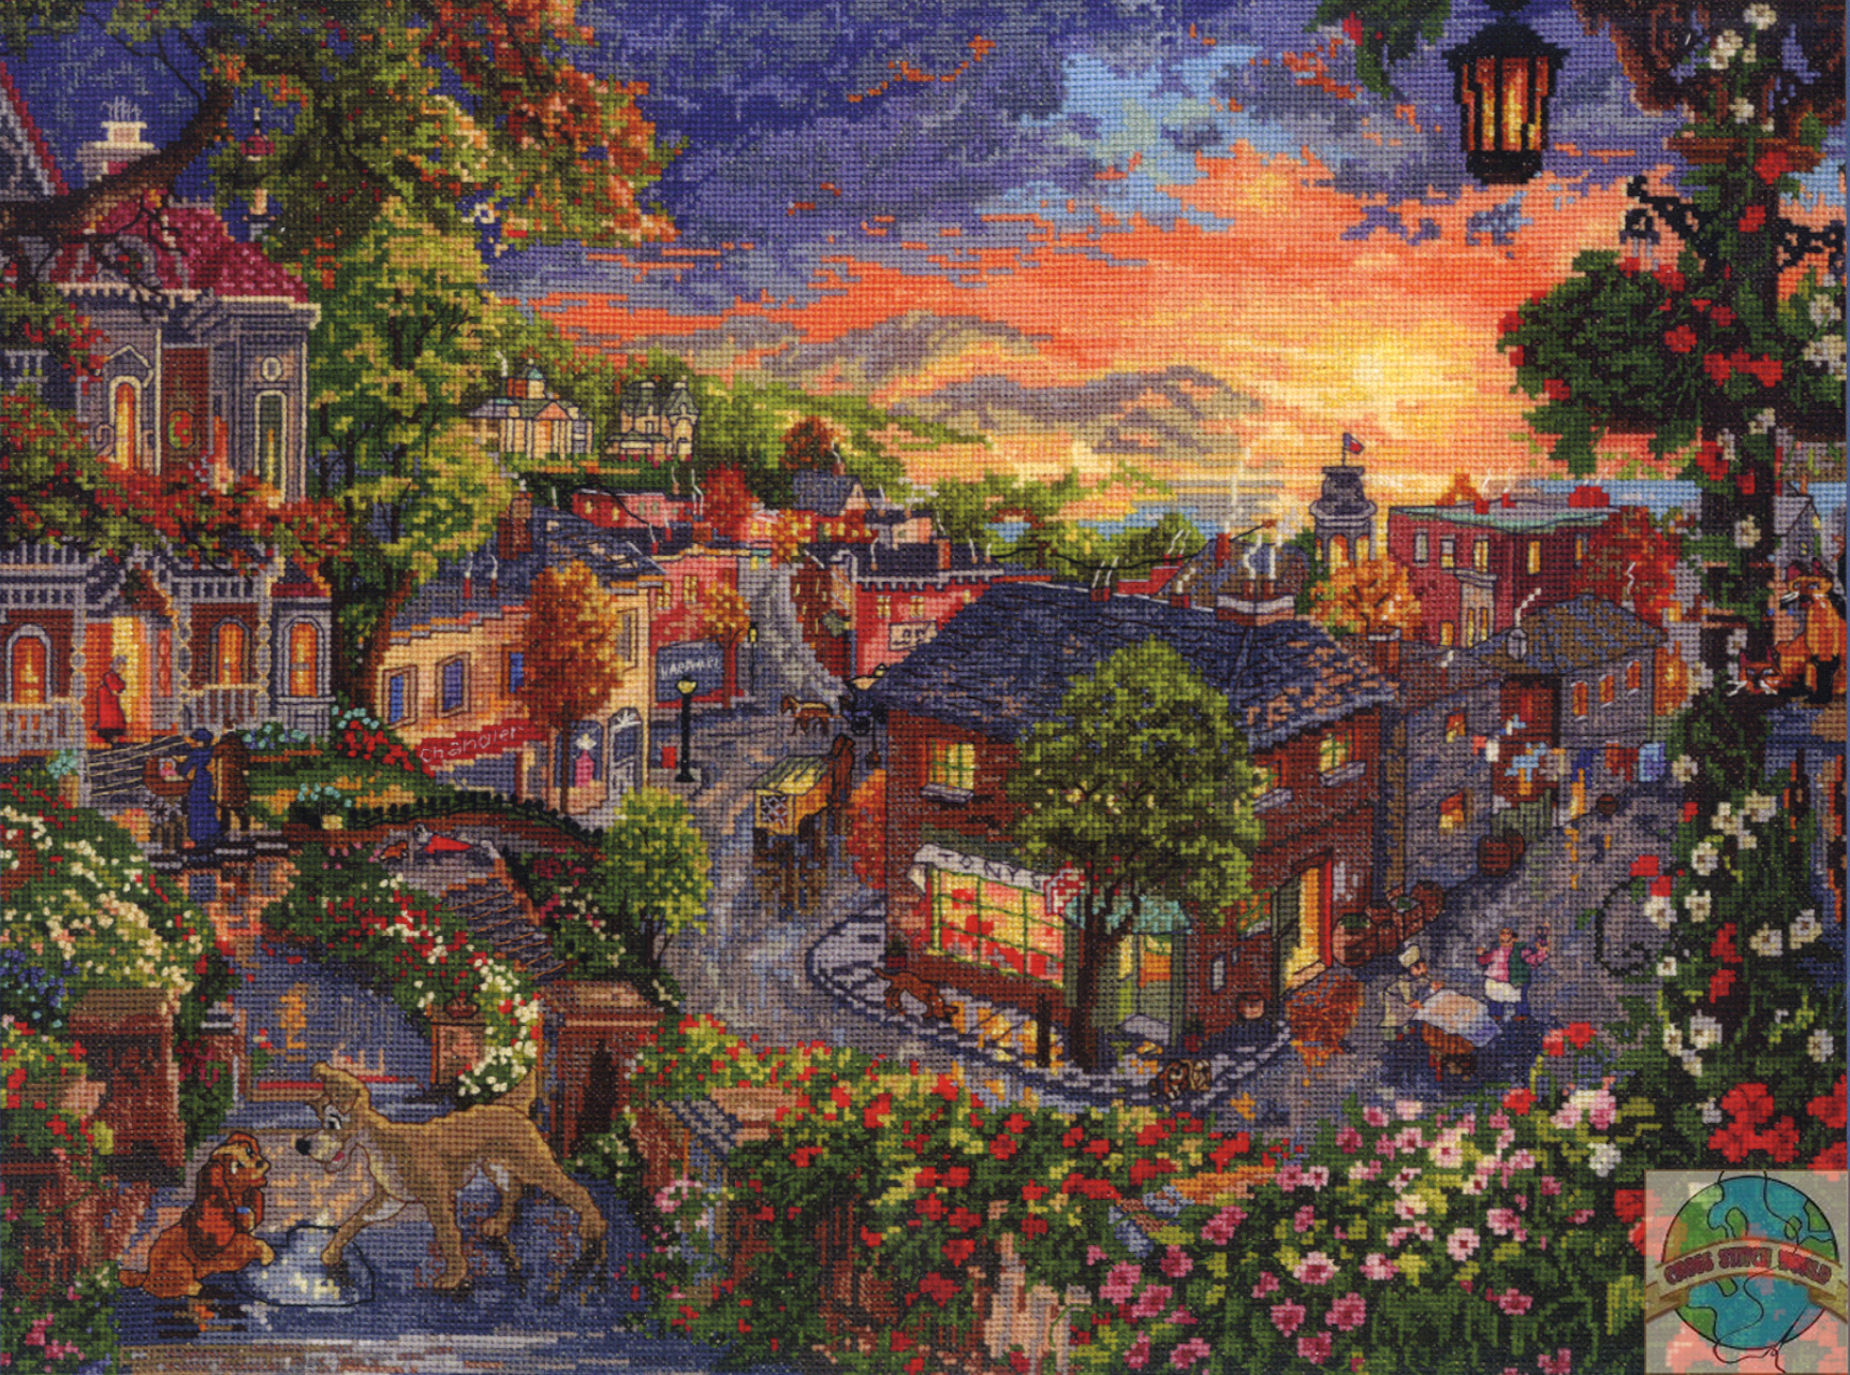 Thomas Kinkade Disney Wallpaper Tangled images